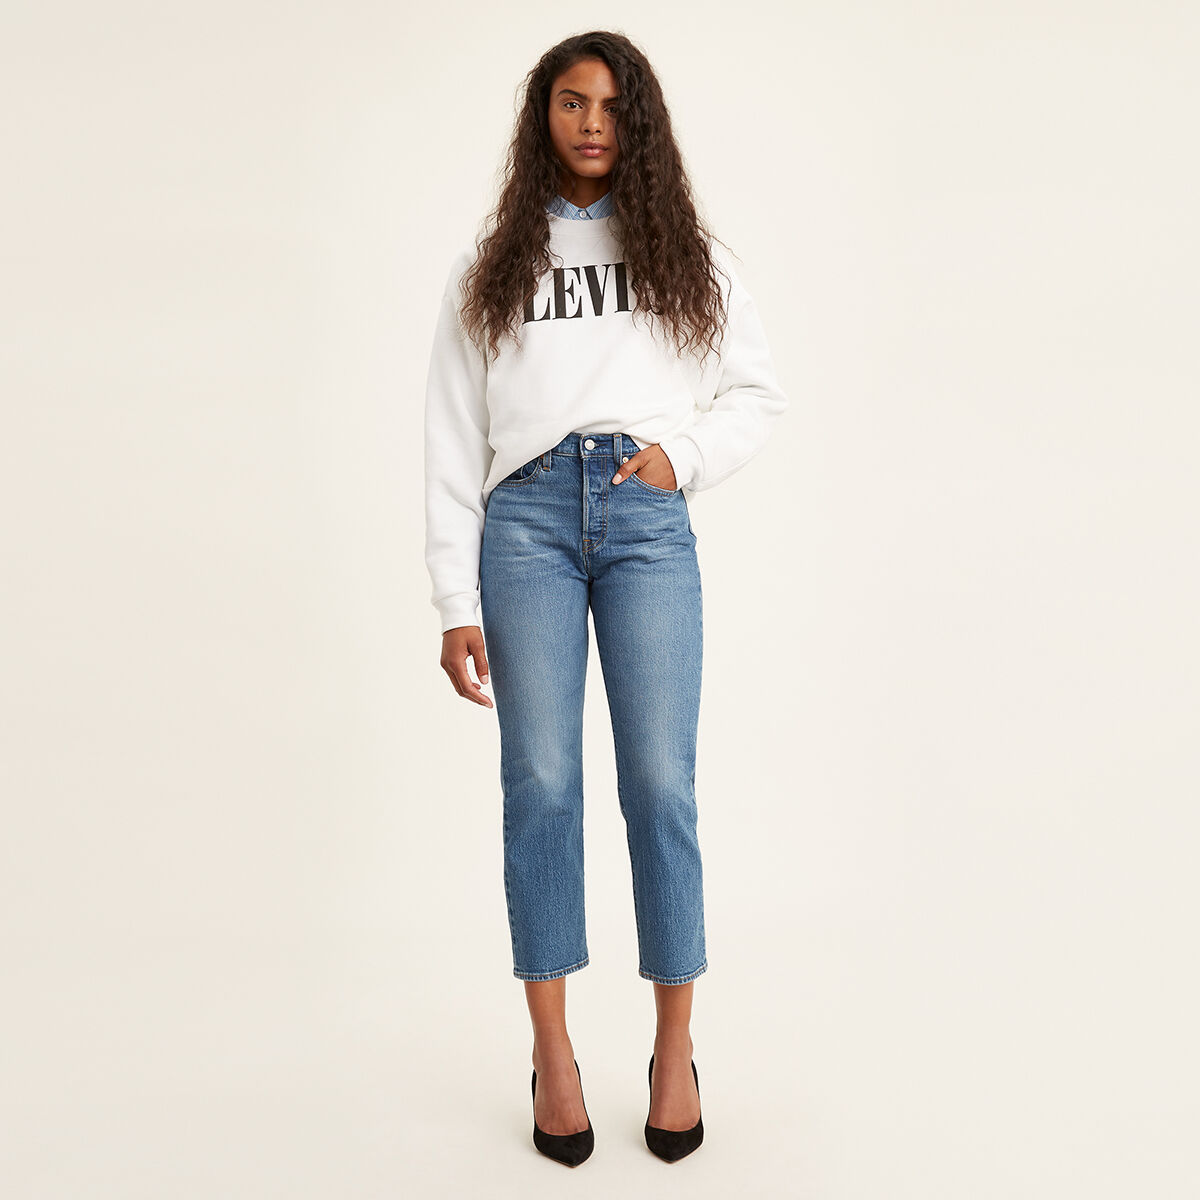 Wedgie Fit Straight Jeans Jive Sound